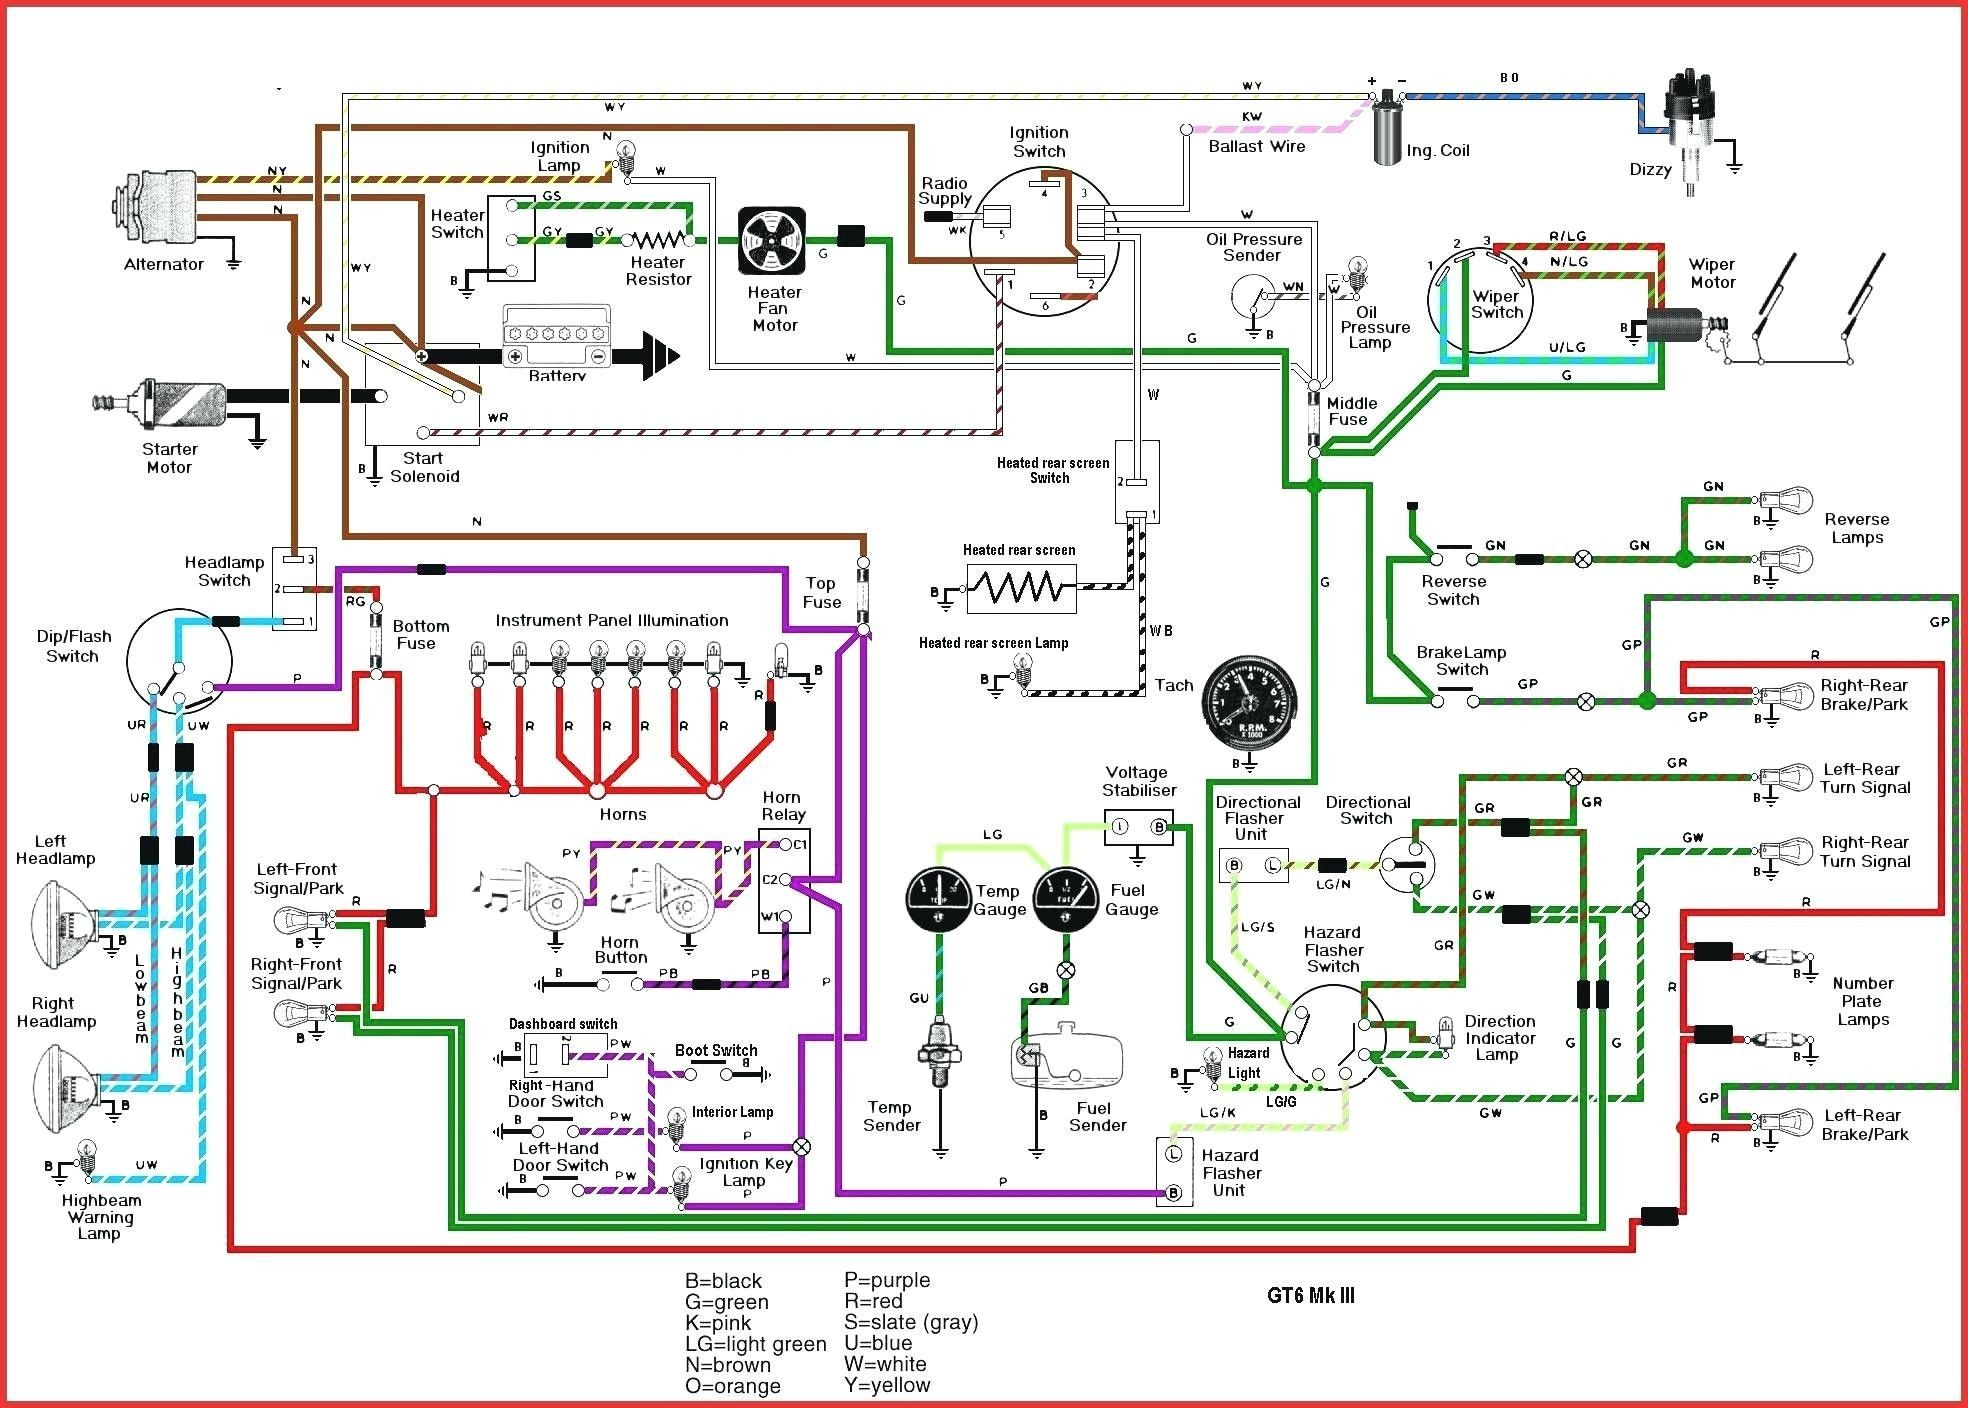 17 Automatic House Plumbing Diagram Http Bookingritzcarlton Info 17 Automatic House Plumbing Electrical Circuit Diagram Electrical Diagram Electrical Wiring